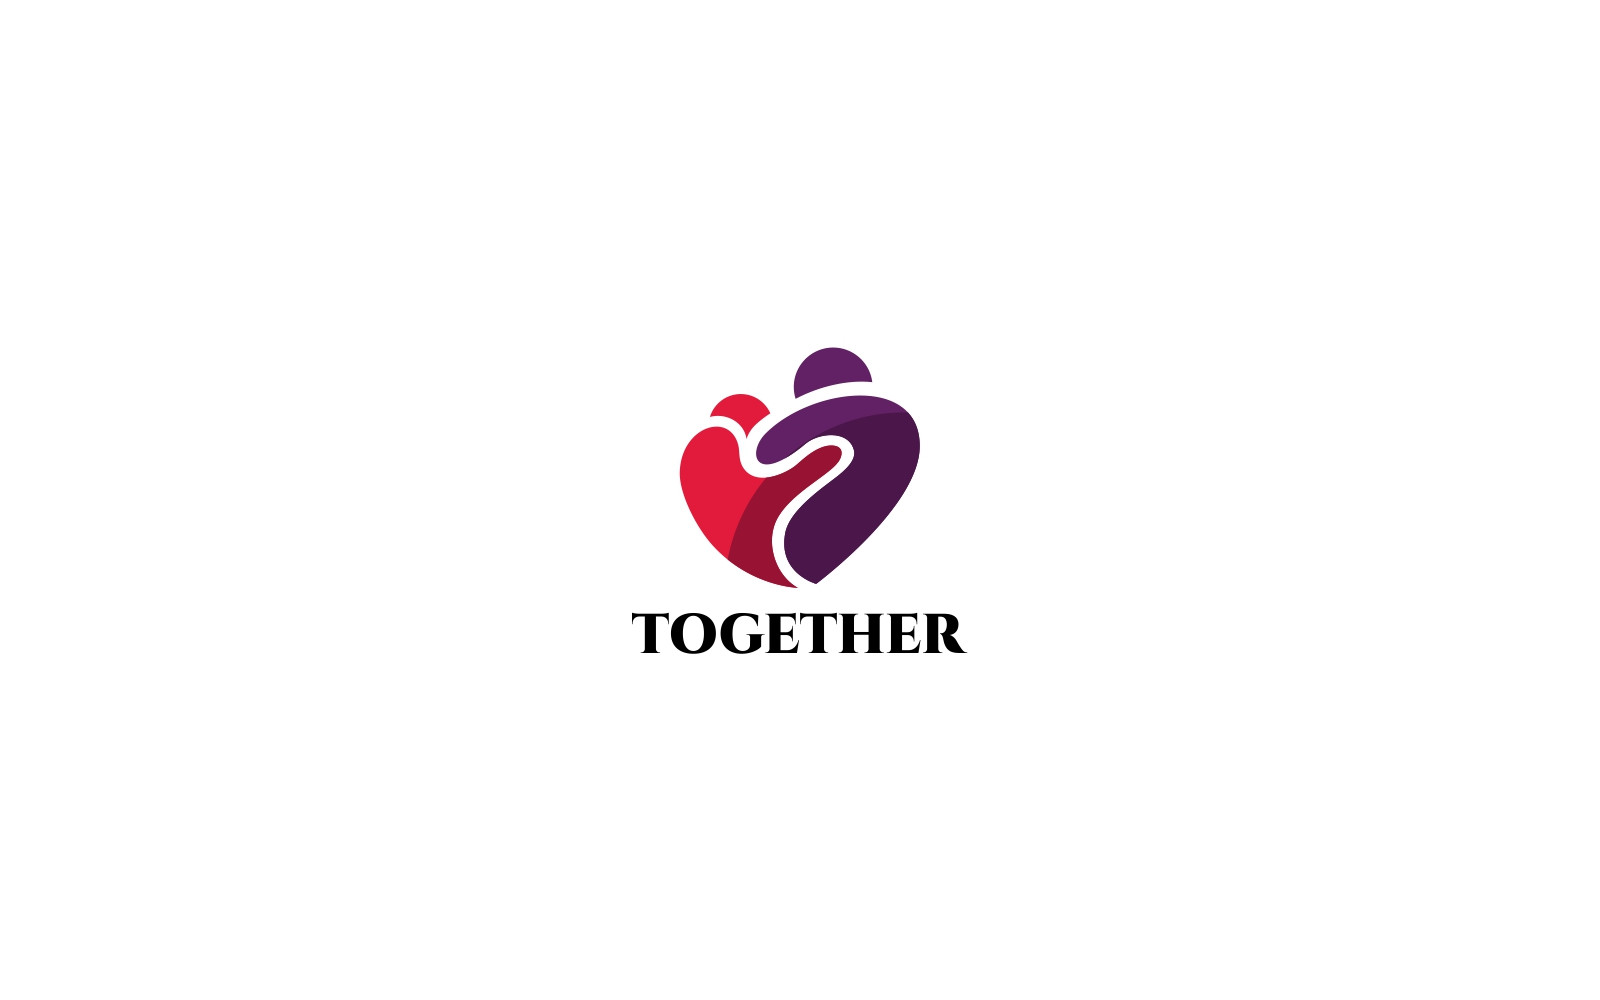 Together Logo Template - 2 People in a pink and purple heart